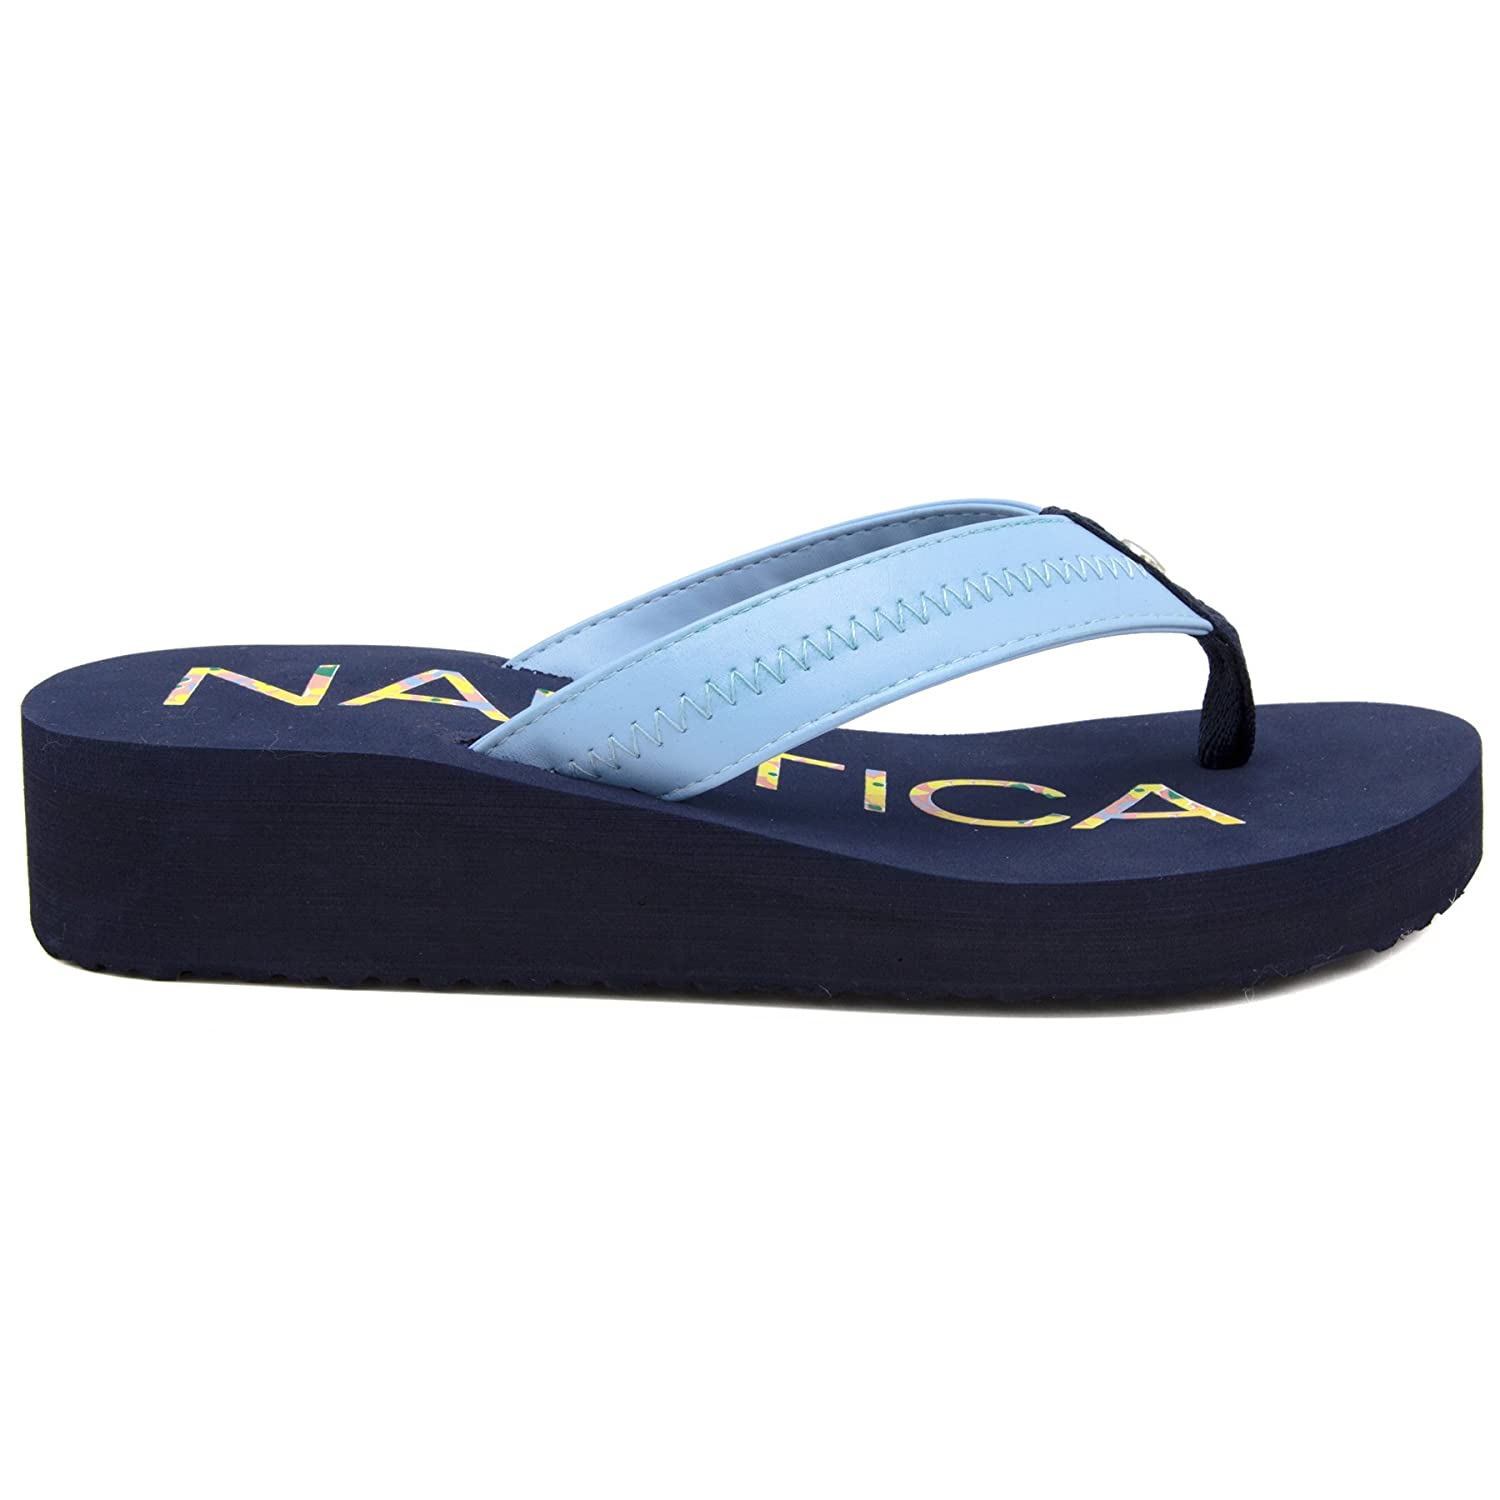 8319dc96854aa Nautica Women's Tedori Wedge Flip Flop, High Fashion Beach Sandal ...